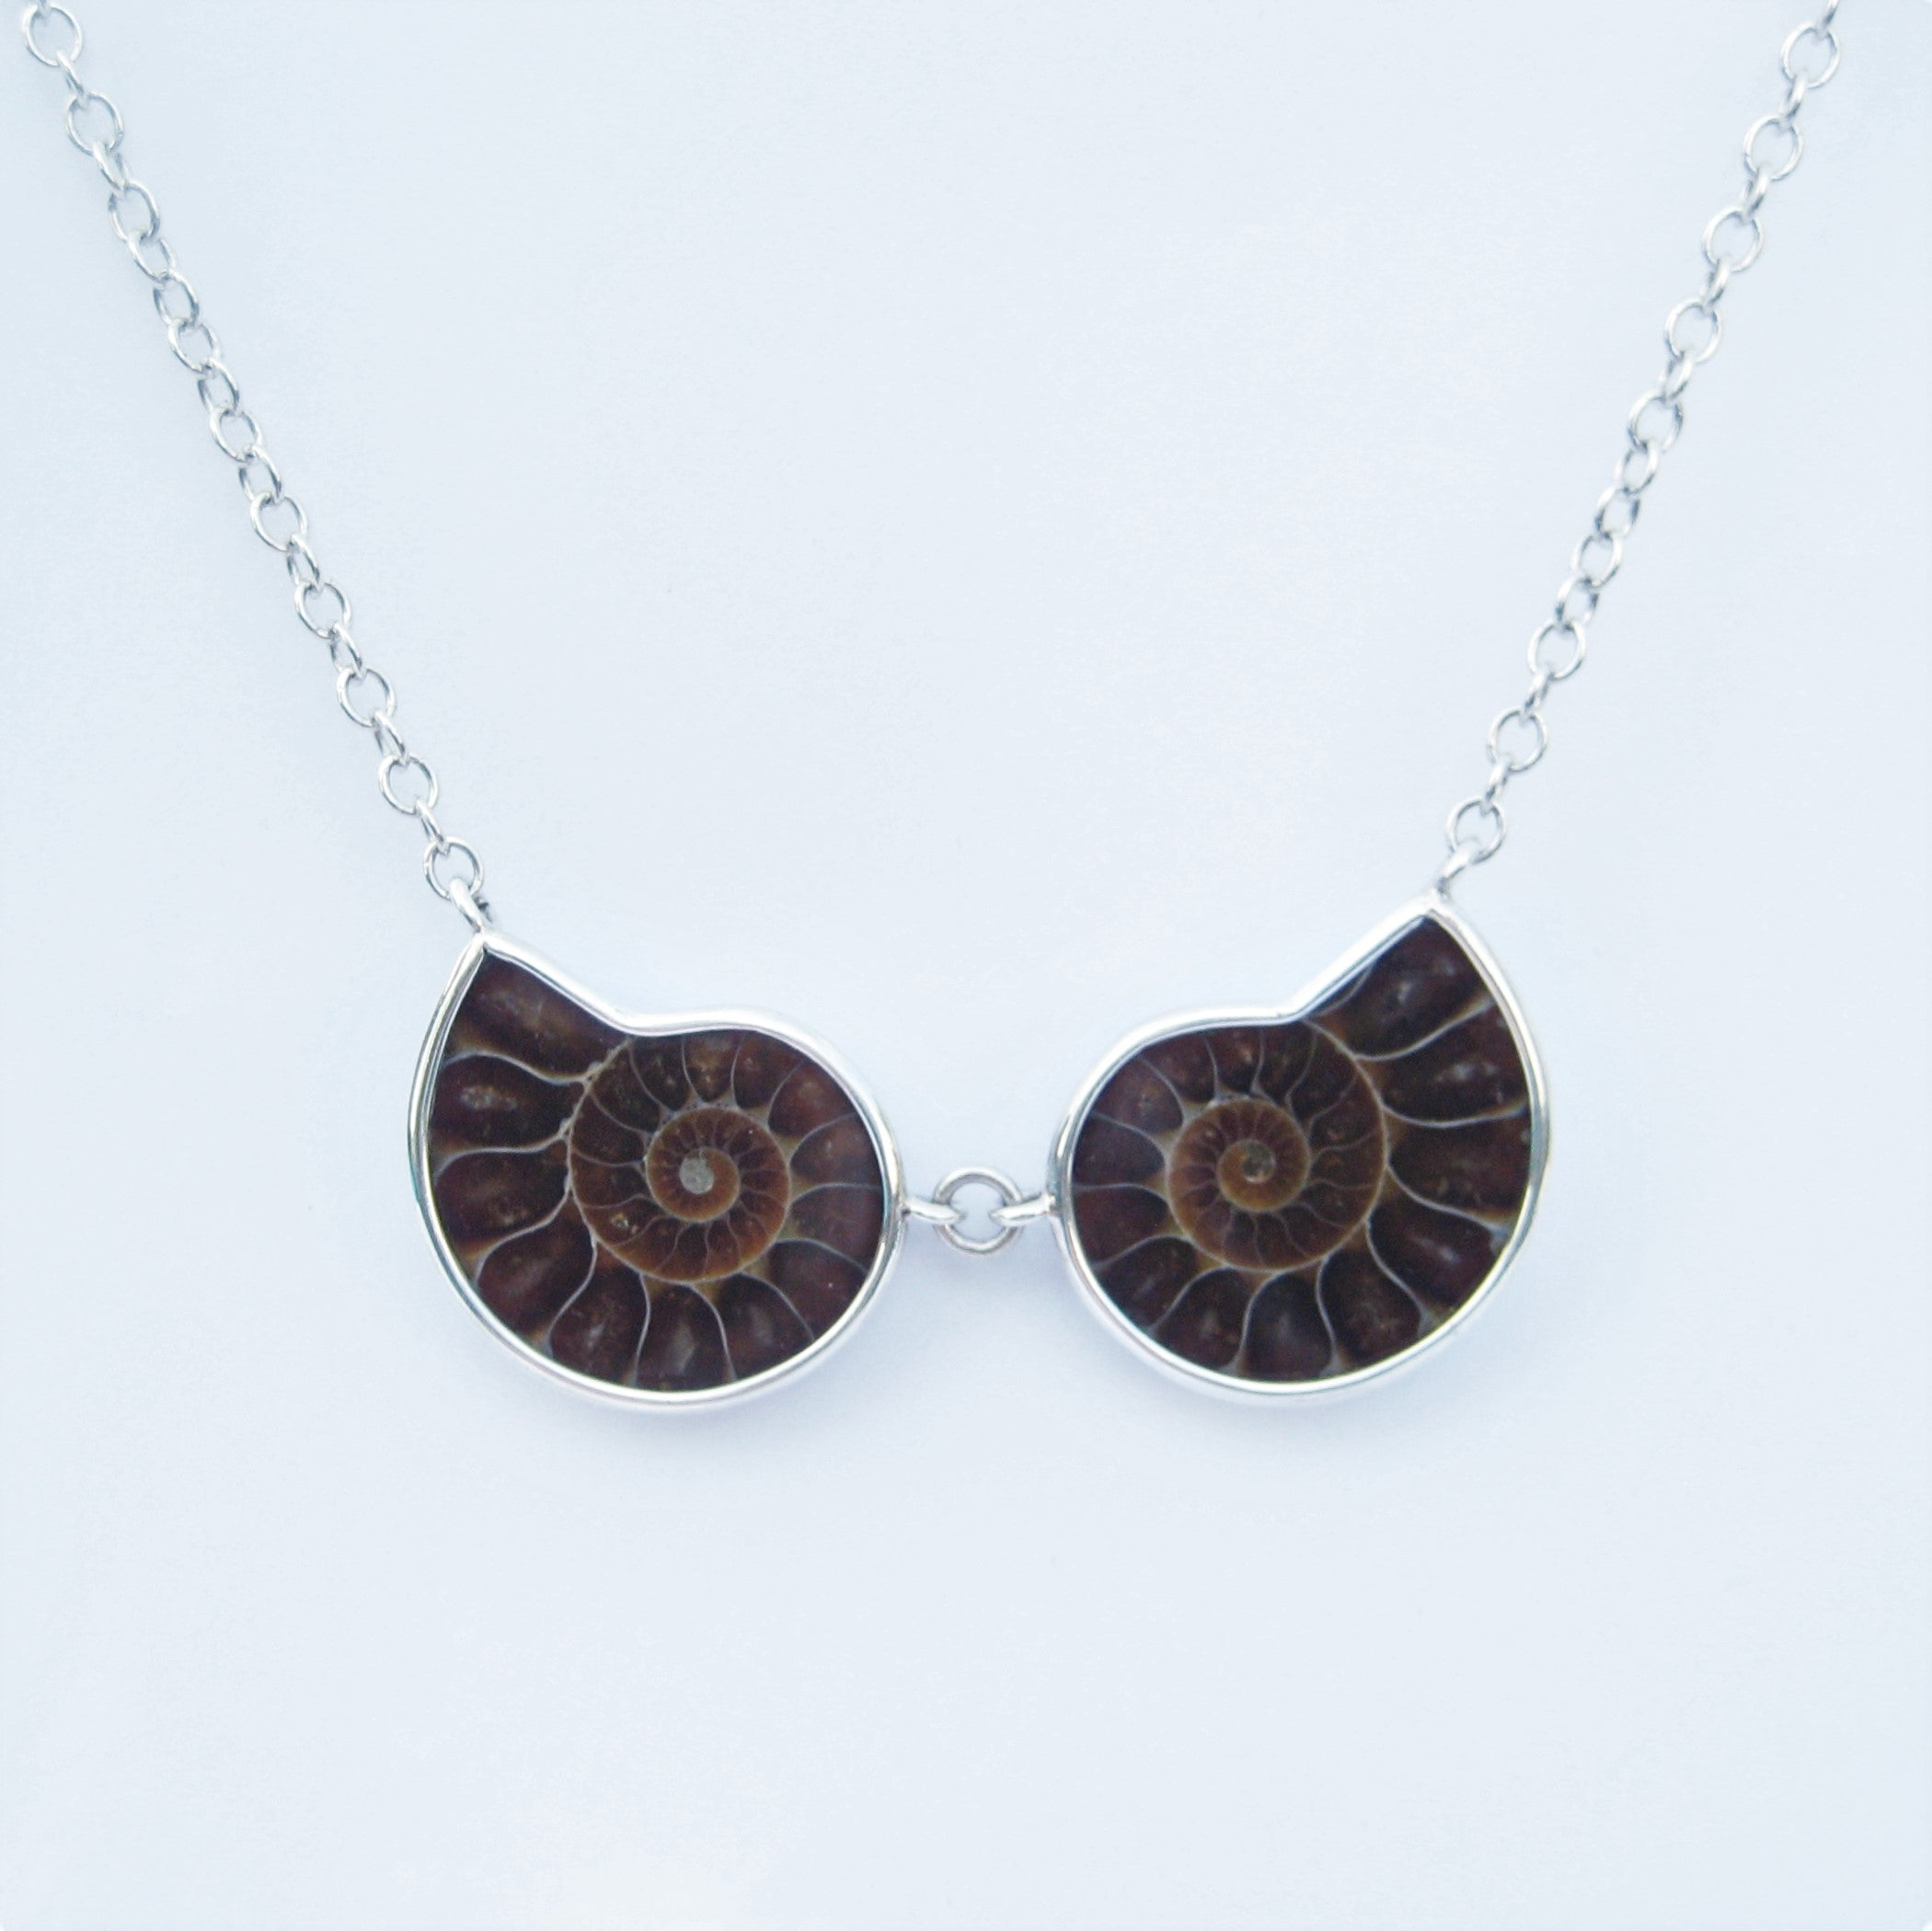 Ammonite Symmetry Necklace